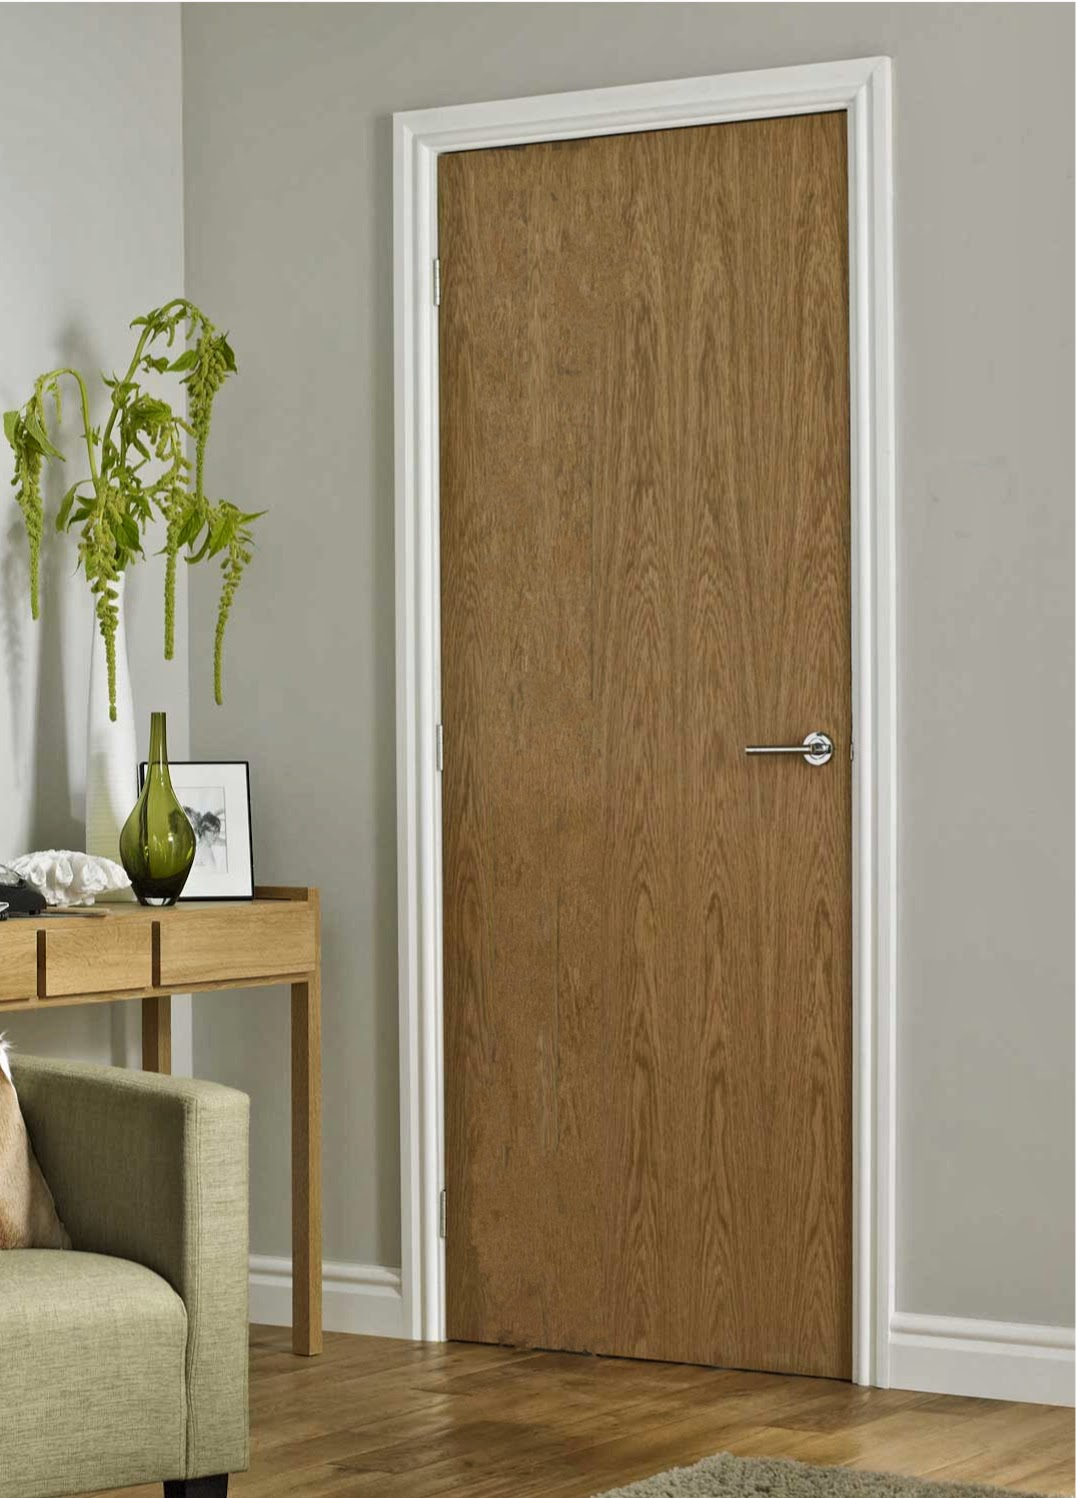 Charmant Peel And Stick Door Skins For Old Scratched Interior Flat Doors | Interior  Door Skins